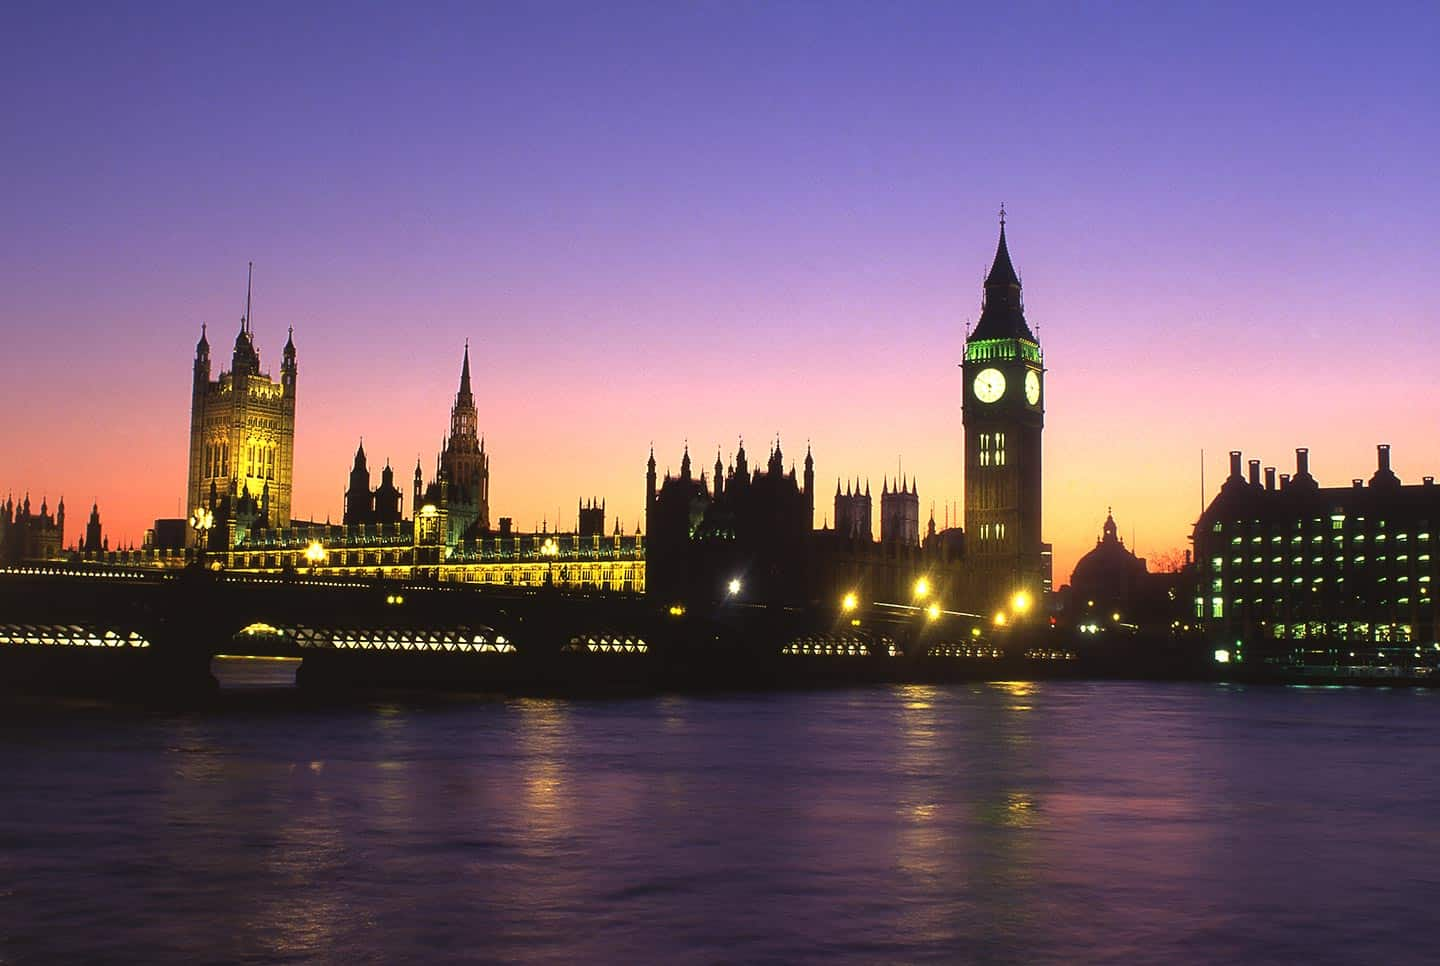 Image of Westminster Bridge annd the Houses of Parliament at night